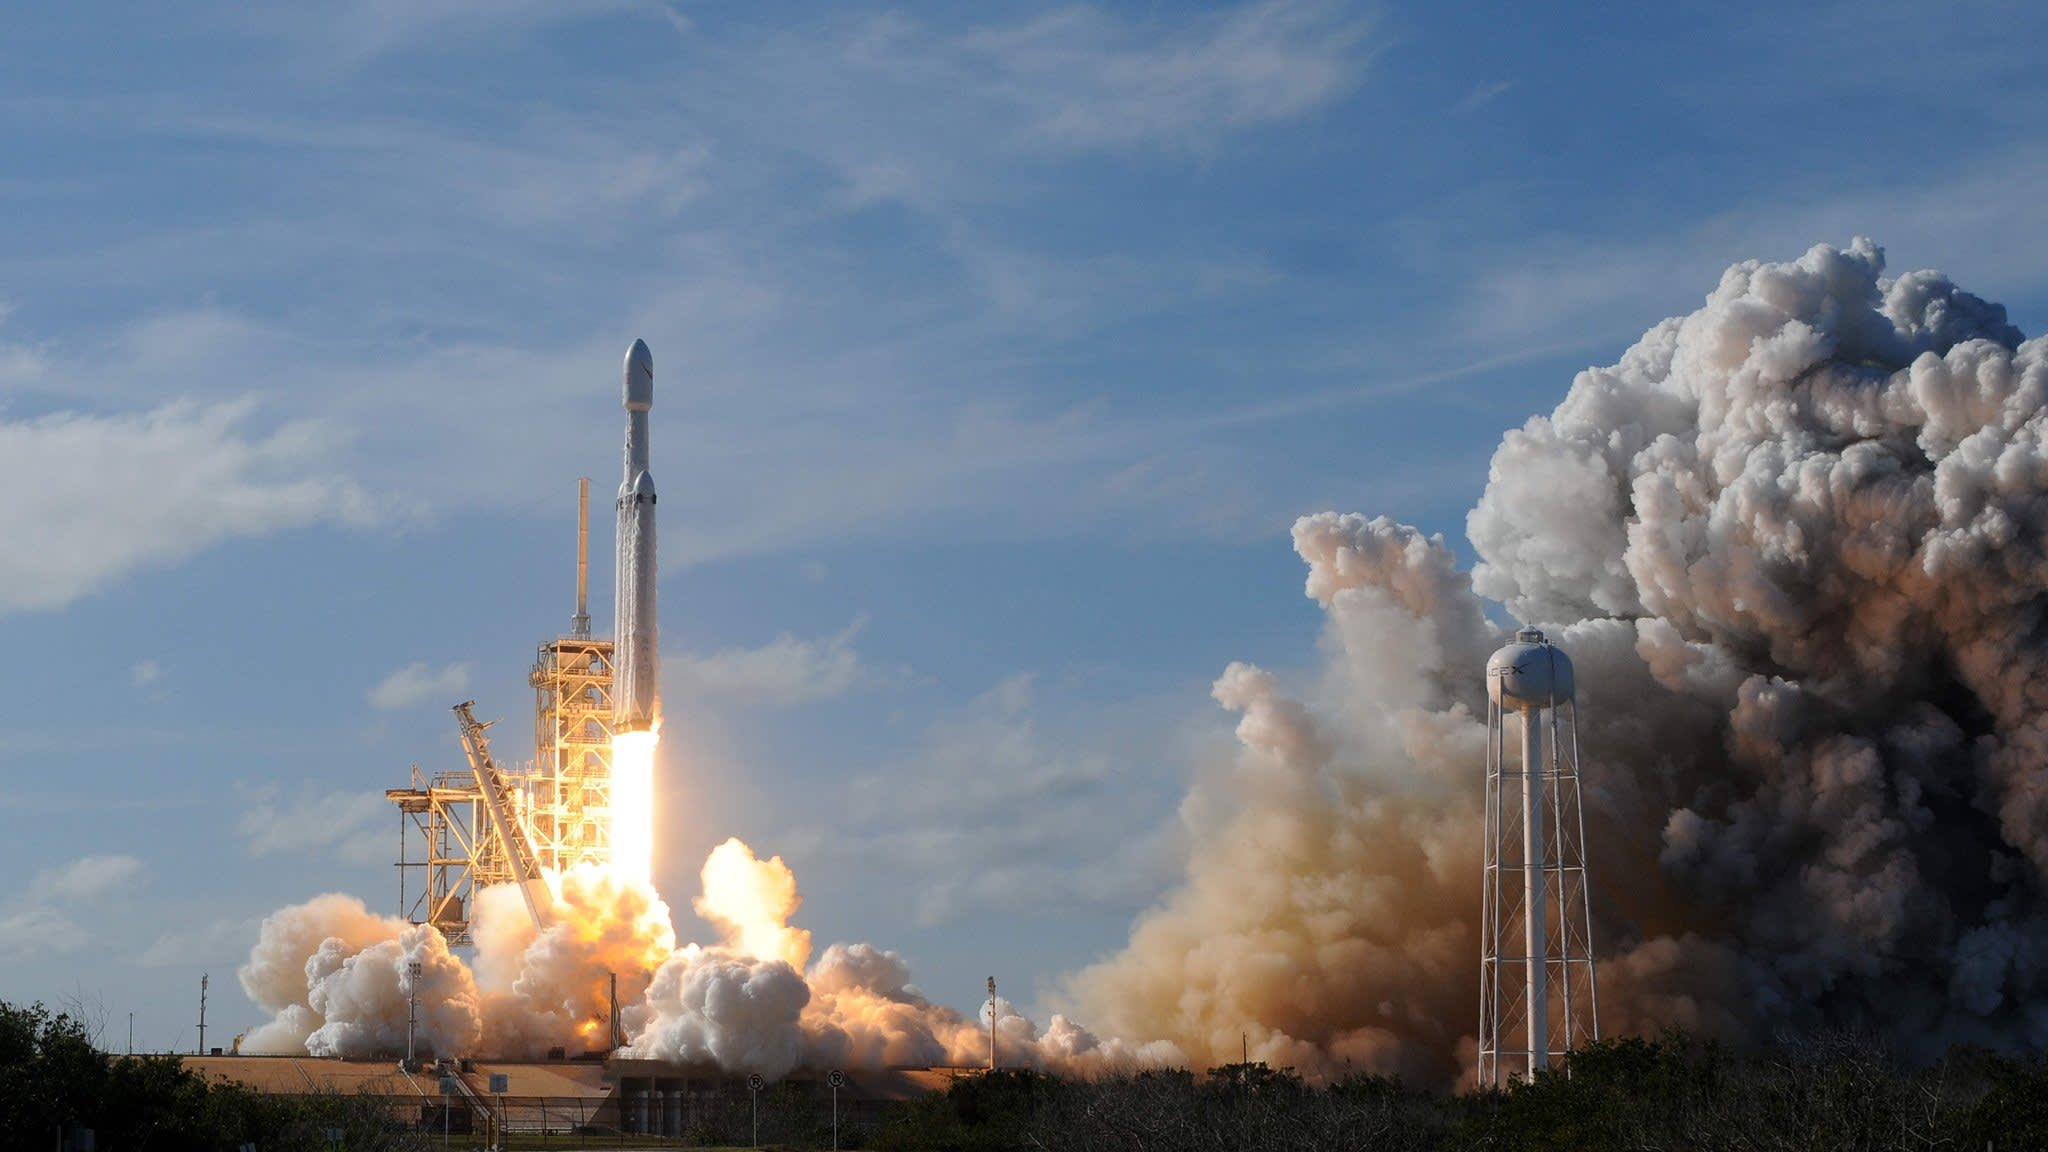 The global technopolitics of space exploration | Financial Times